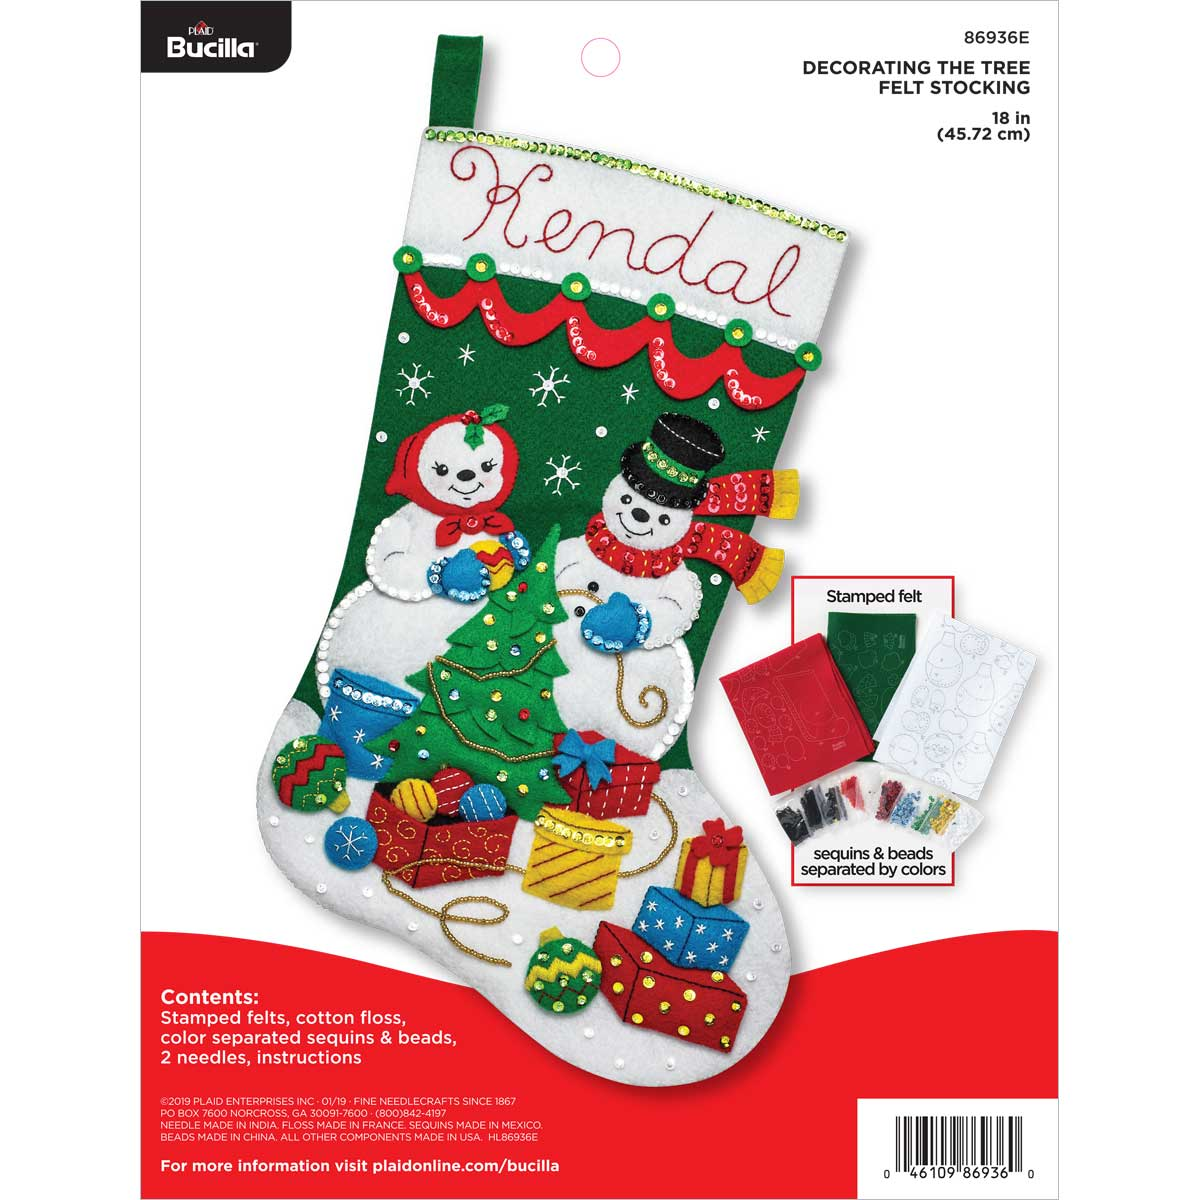 Bucilla ® Seasonal - Felt - Stocking Kits - Decorating the Tree - 86936E